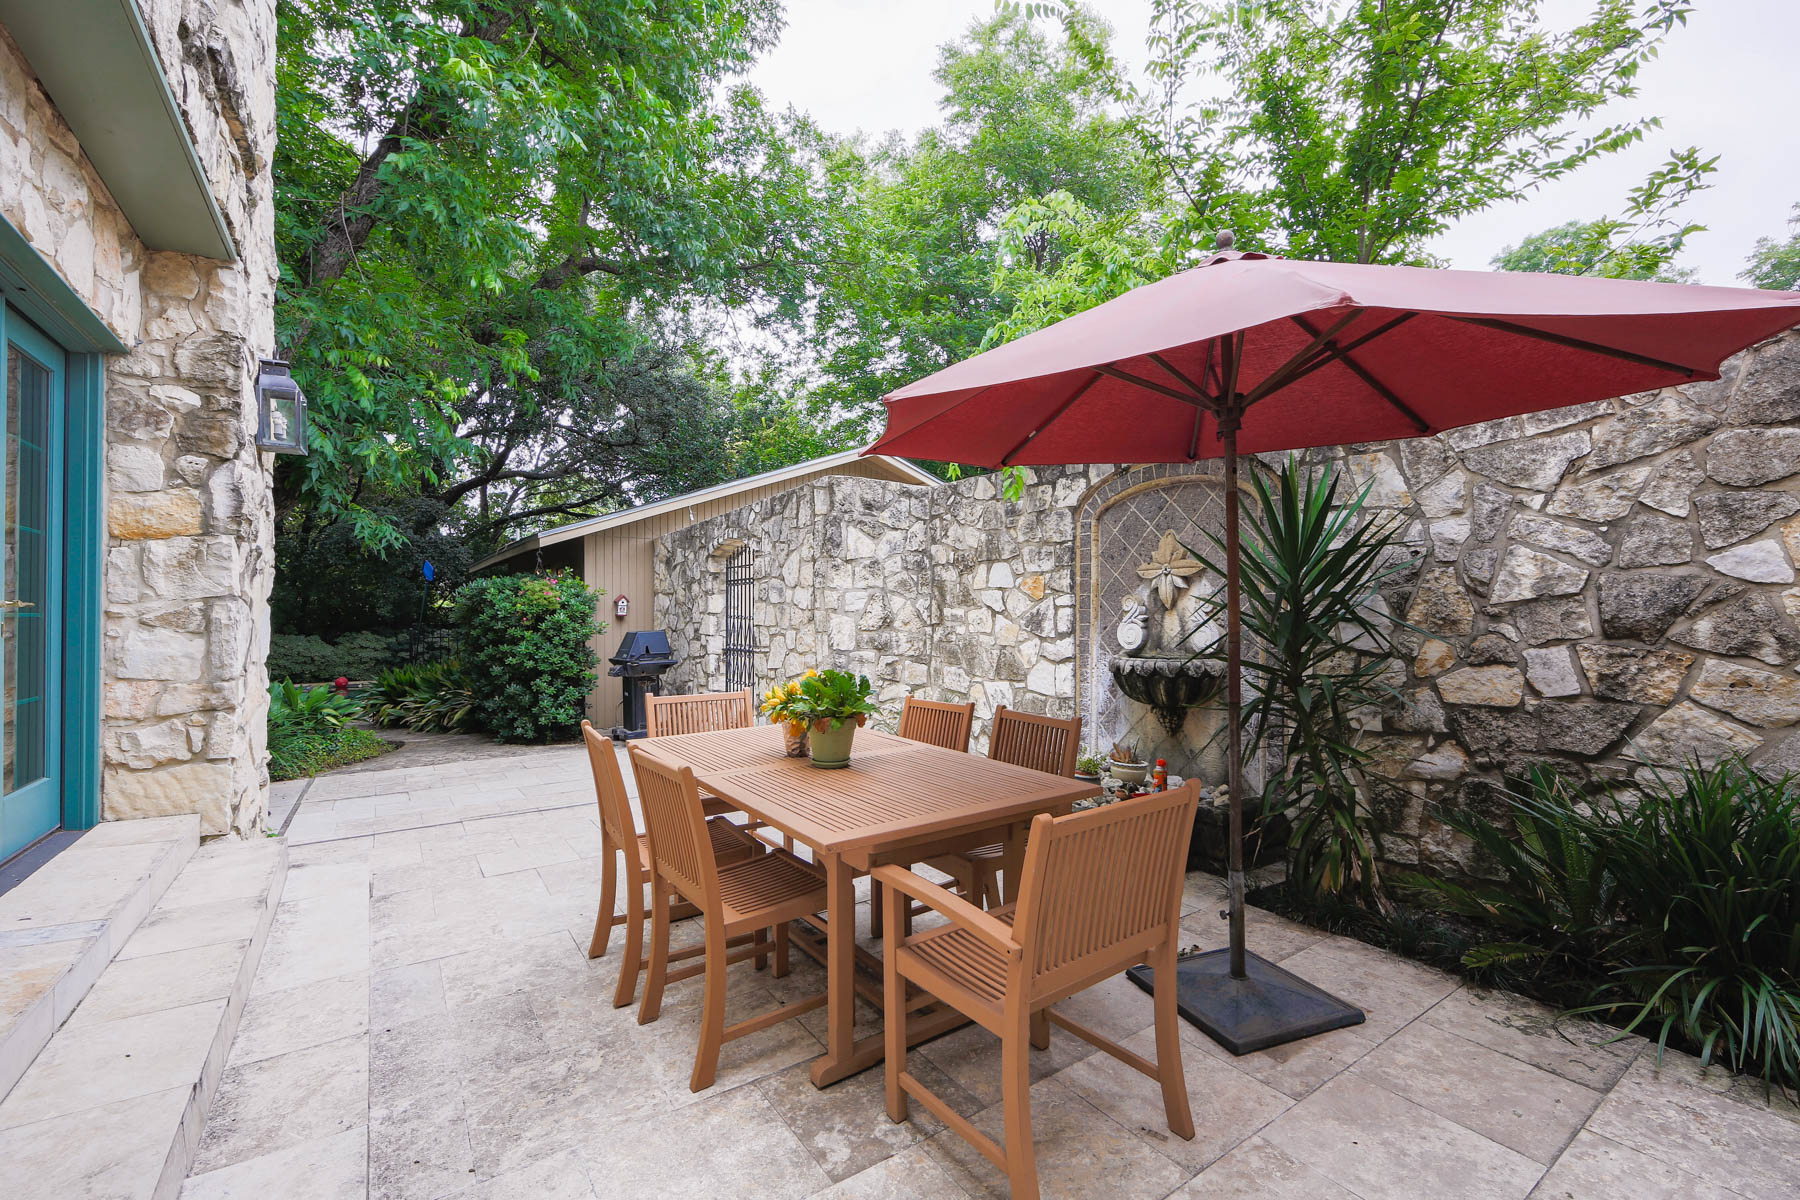 Additional photo for property listing at Charming Olmos Park Home 121 Primera Dr San Antonio, Texas 78212 Estados Unidos